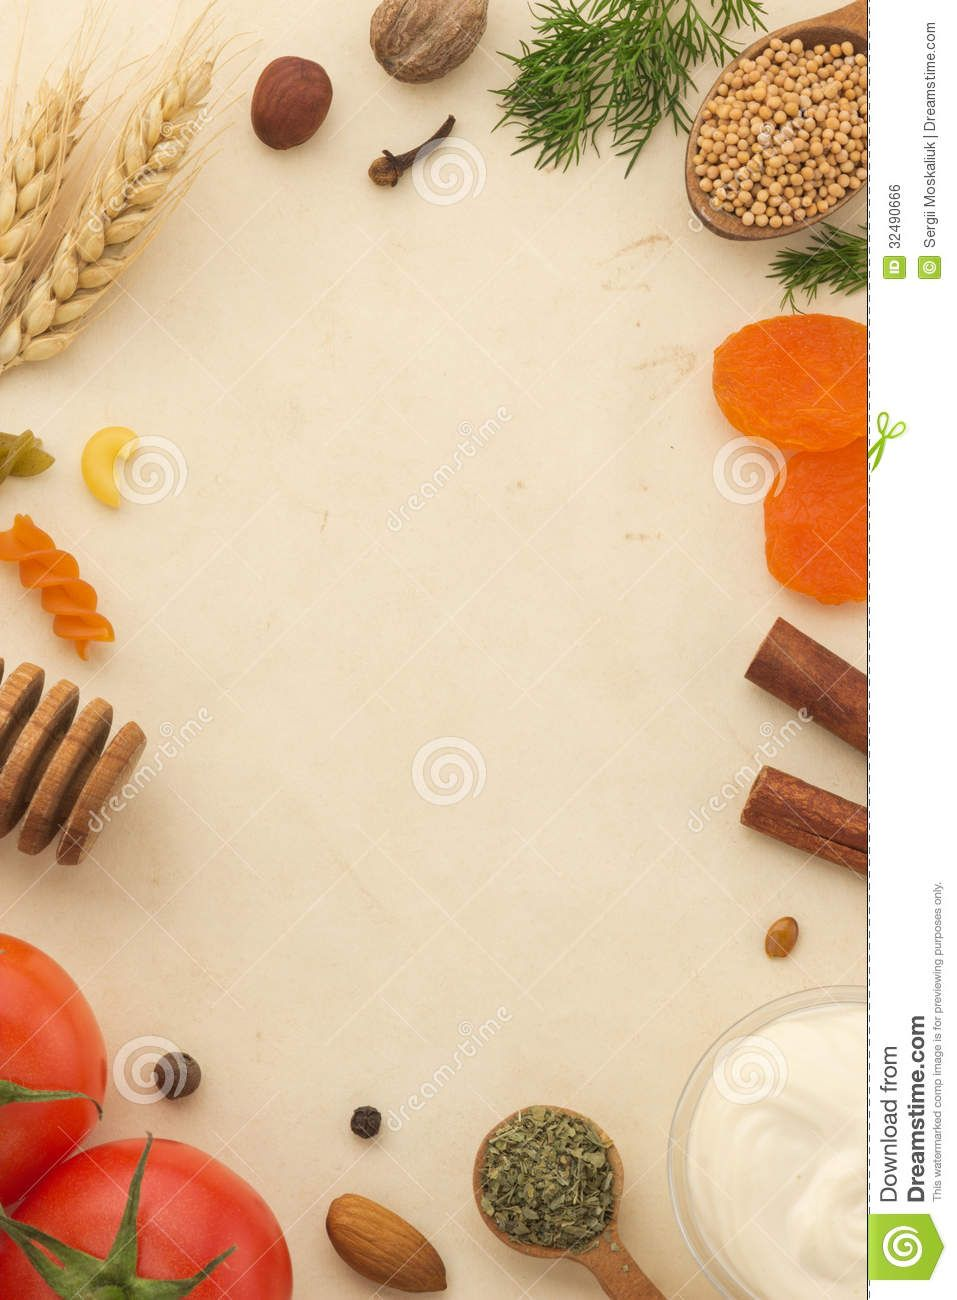 Wallpaper Food Cooking Grill Vegetables Peppers: Blank Healthy Food Backdrops